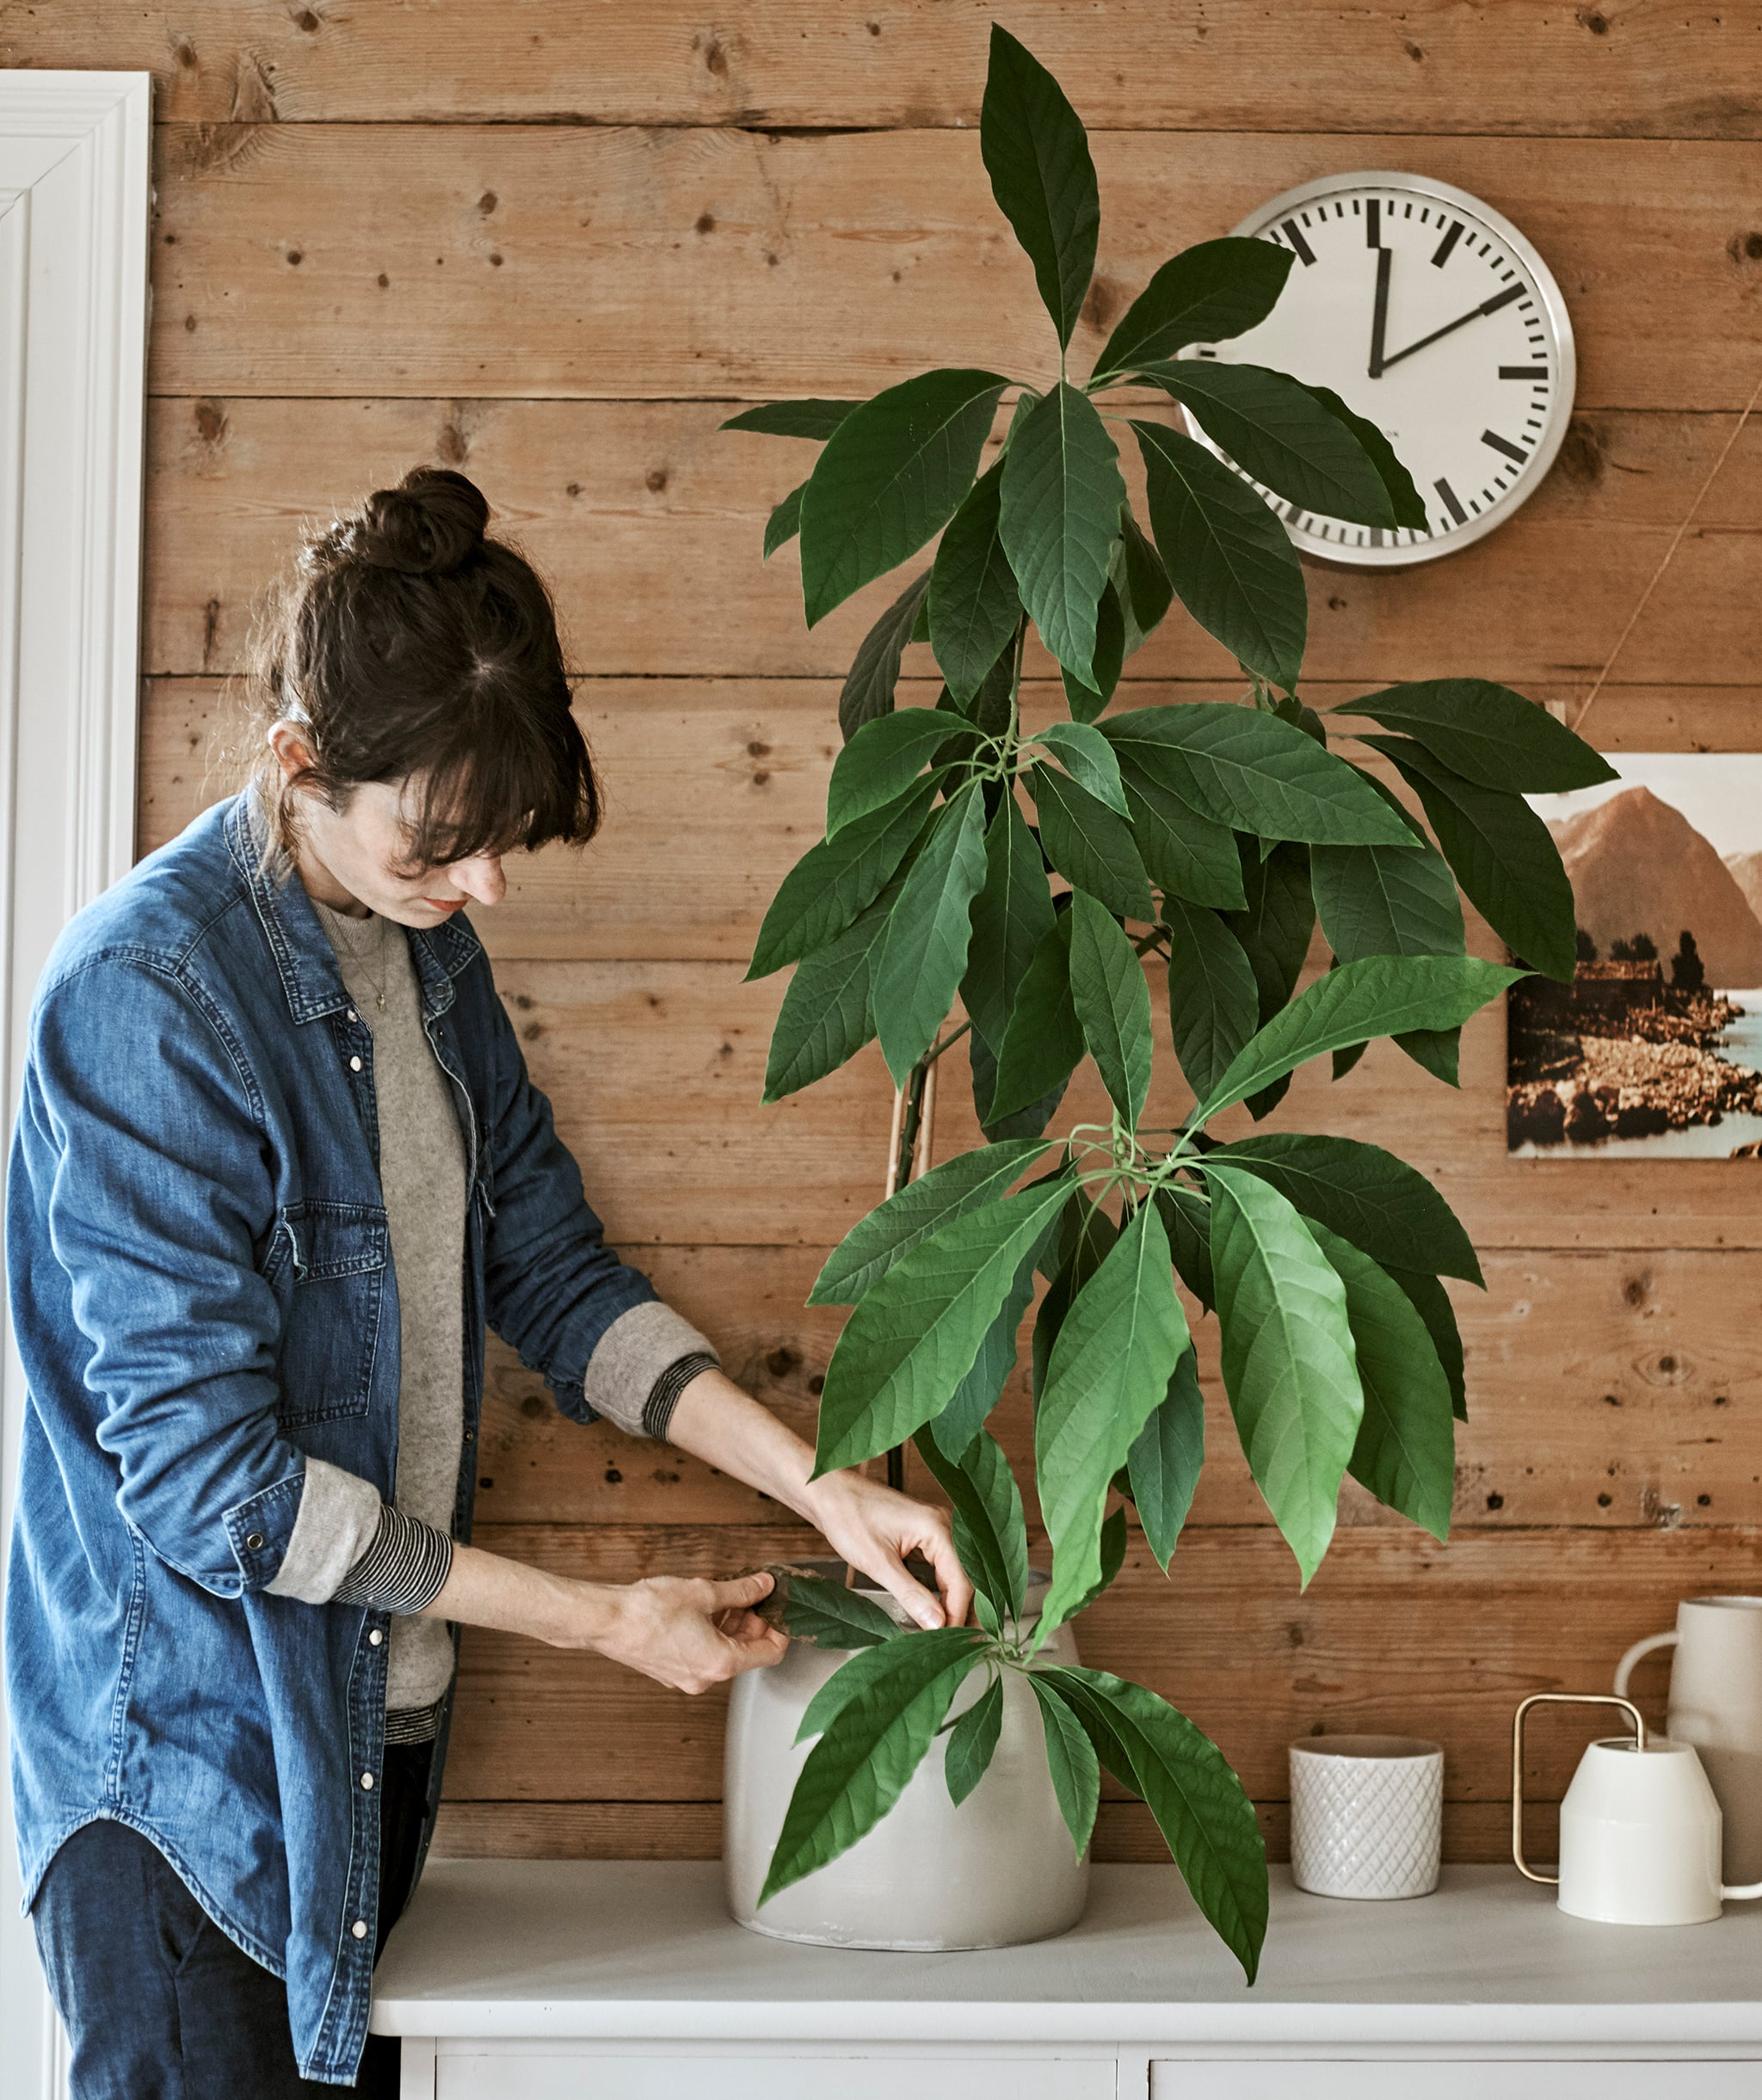 A woman checks a leafy houseplant in a white pot placed on top of a cabinet in front of a wood panelled wall with a clock.